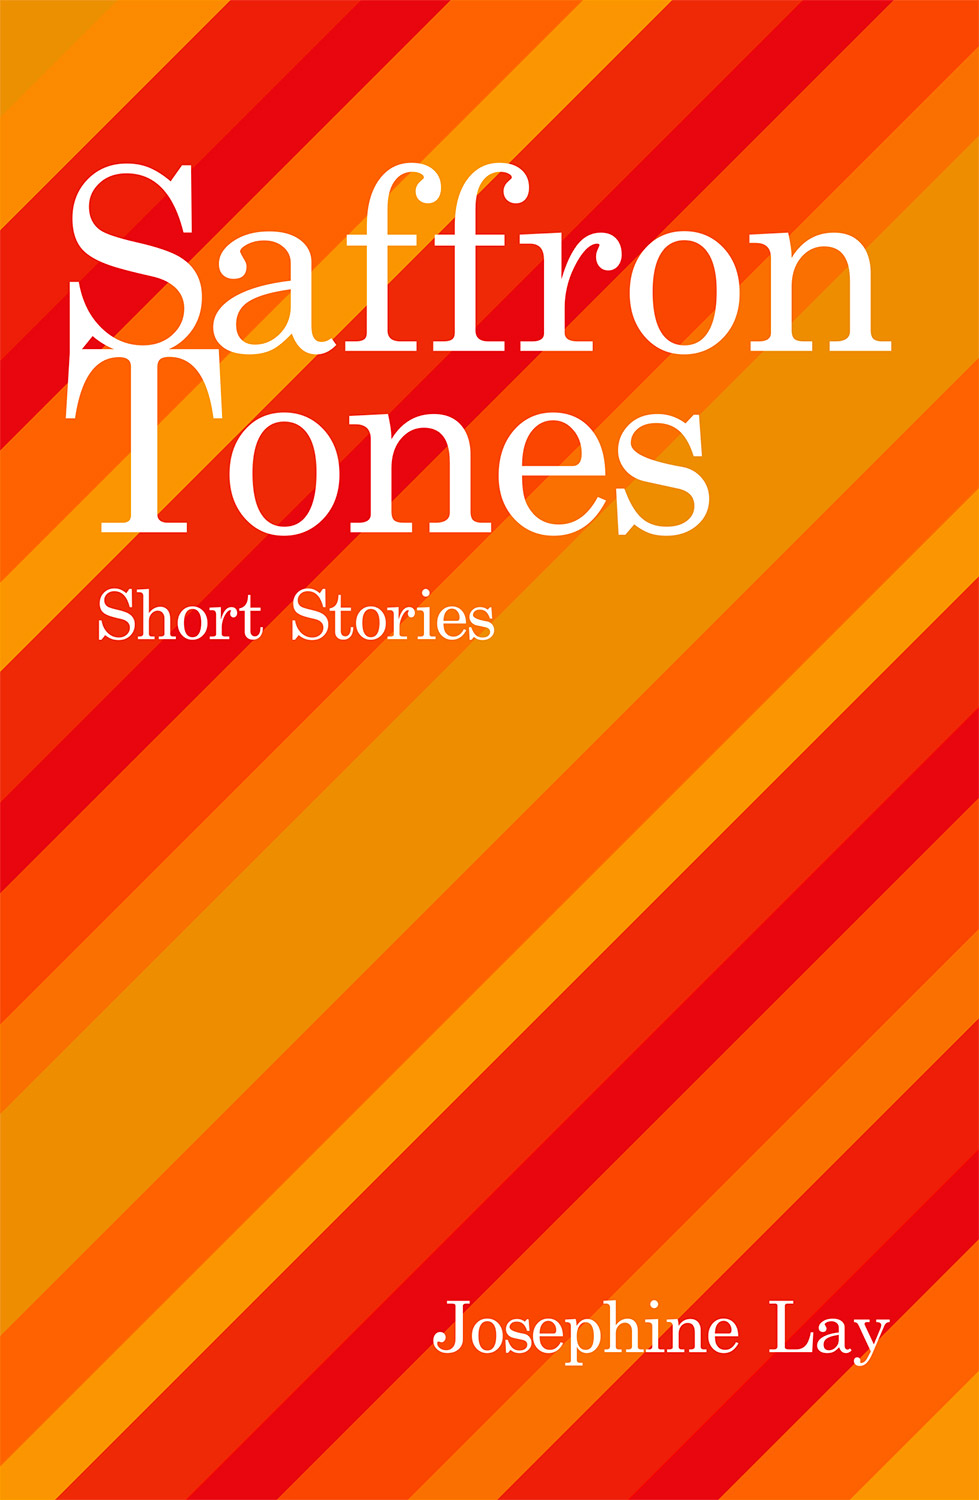 Saffron Tones Book Cover Design